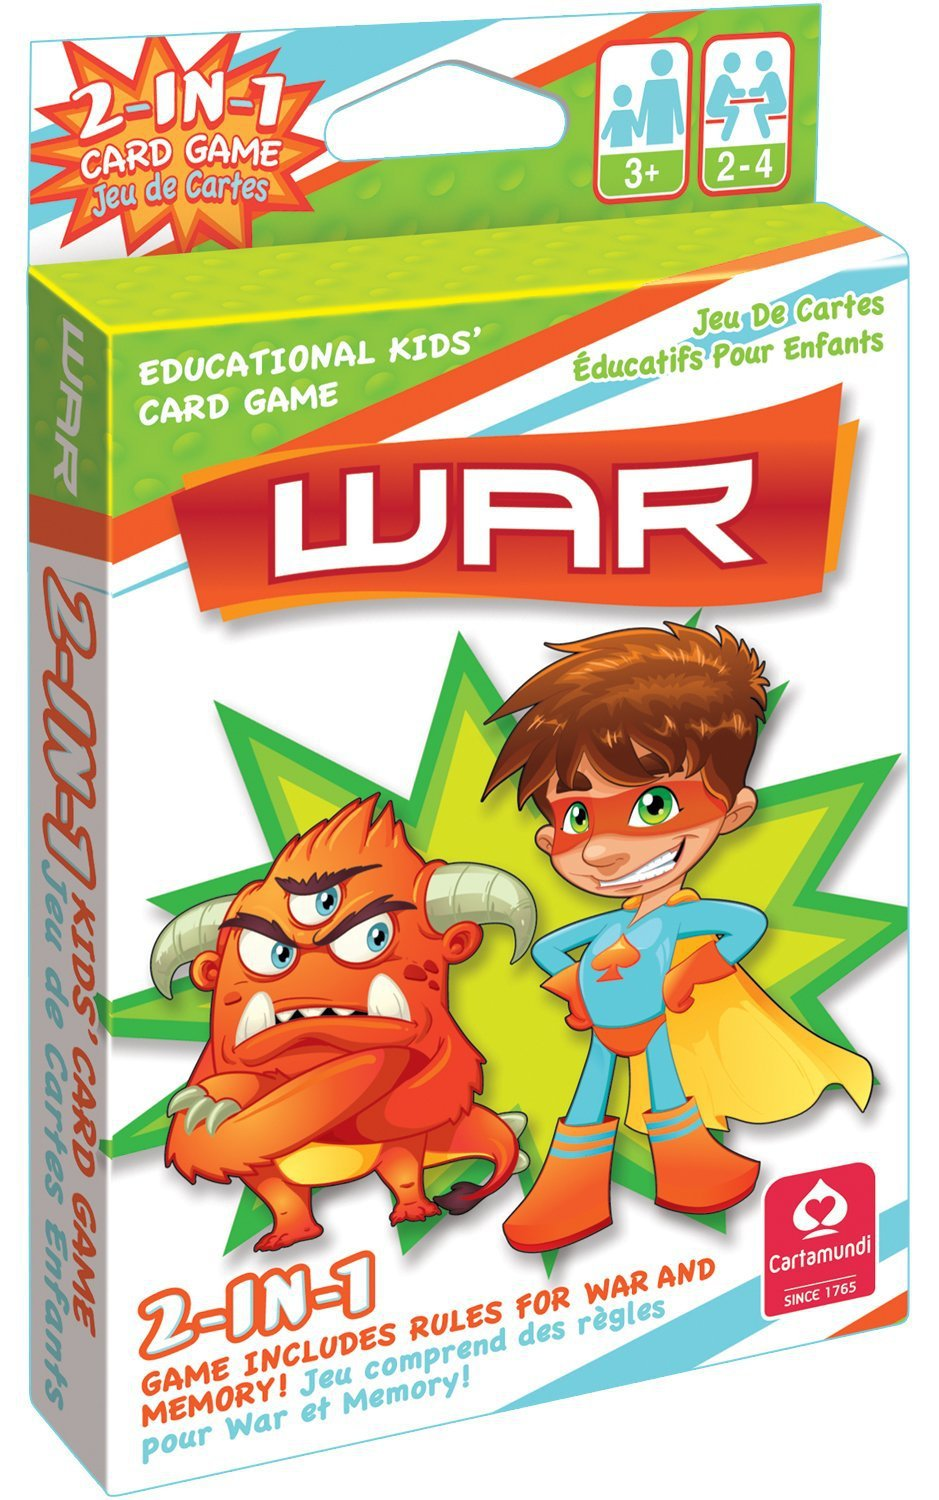 2 In 1 Card Game War & Memory by Carta mundi by Cute Toys